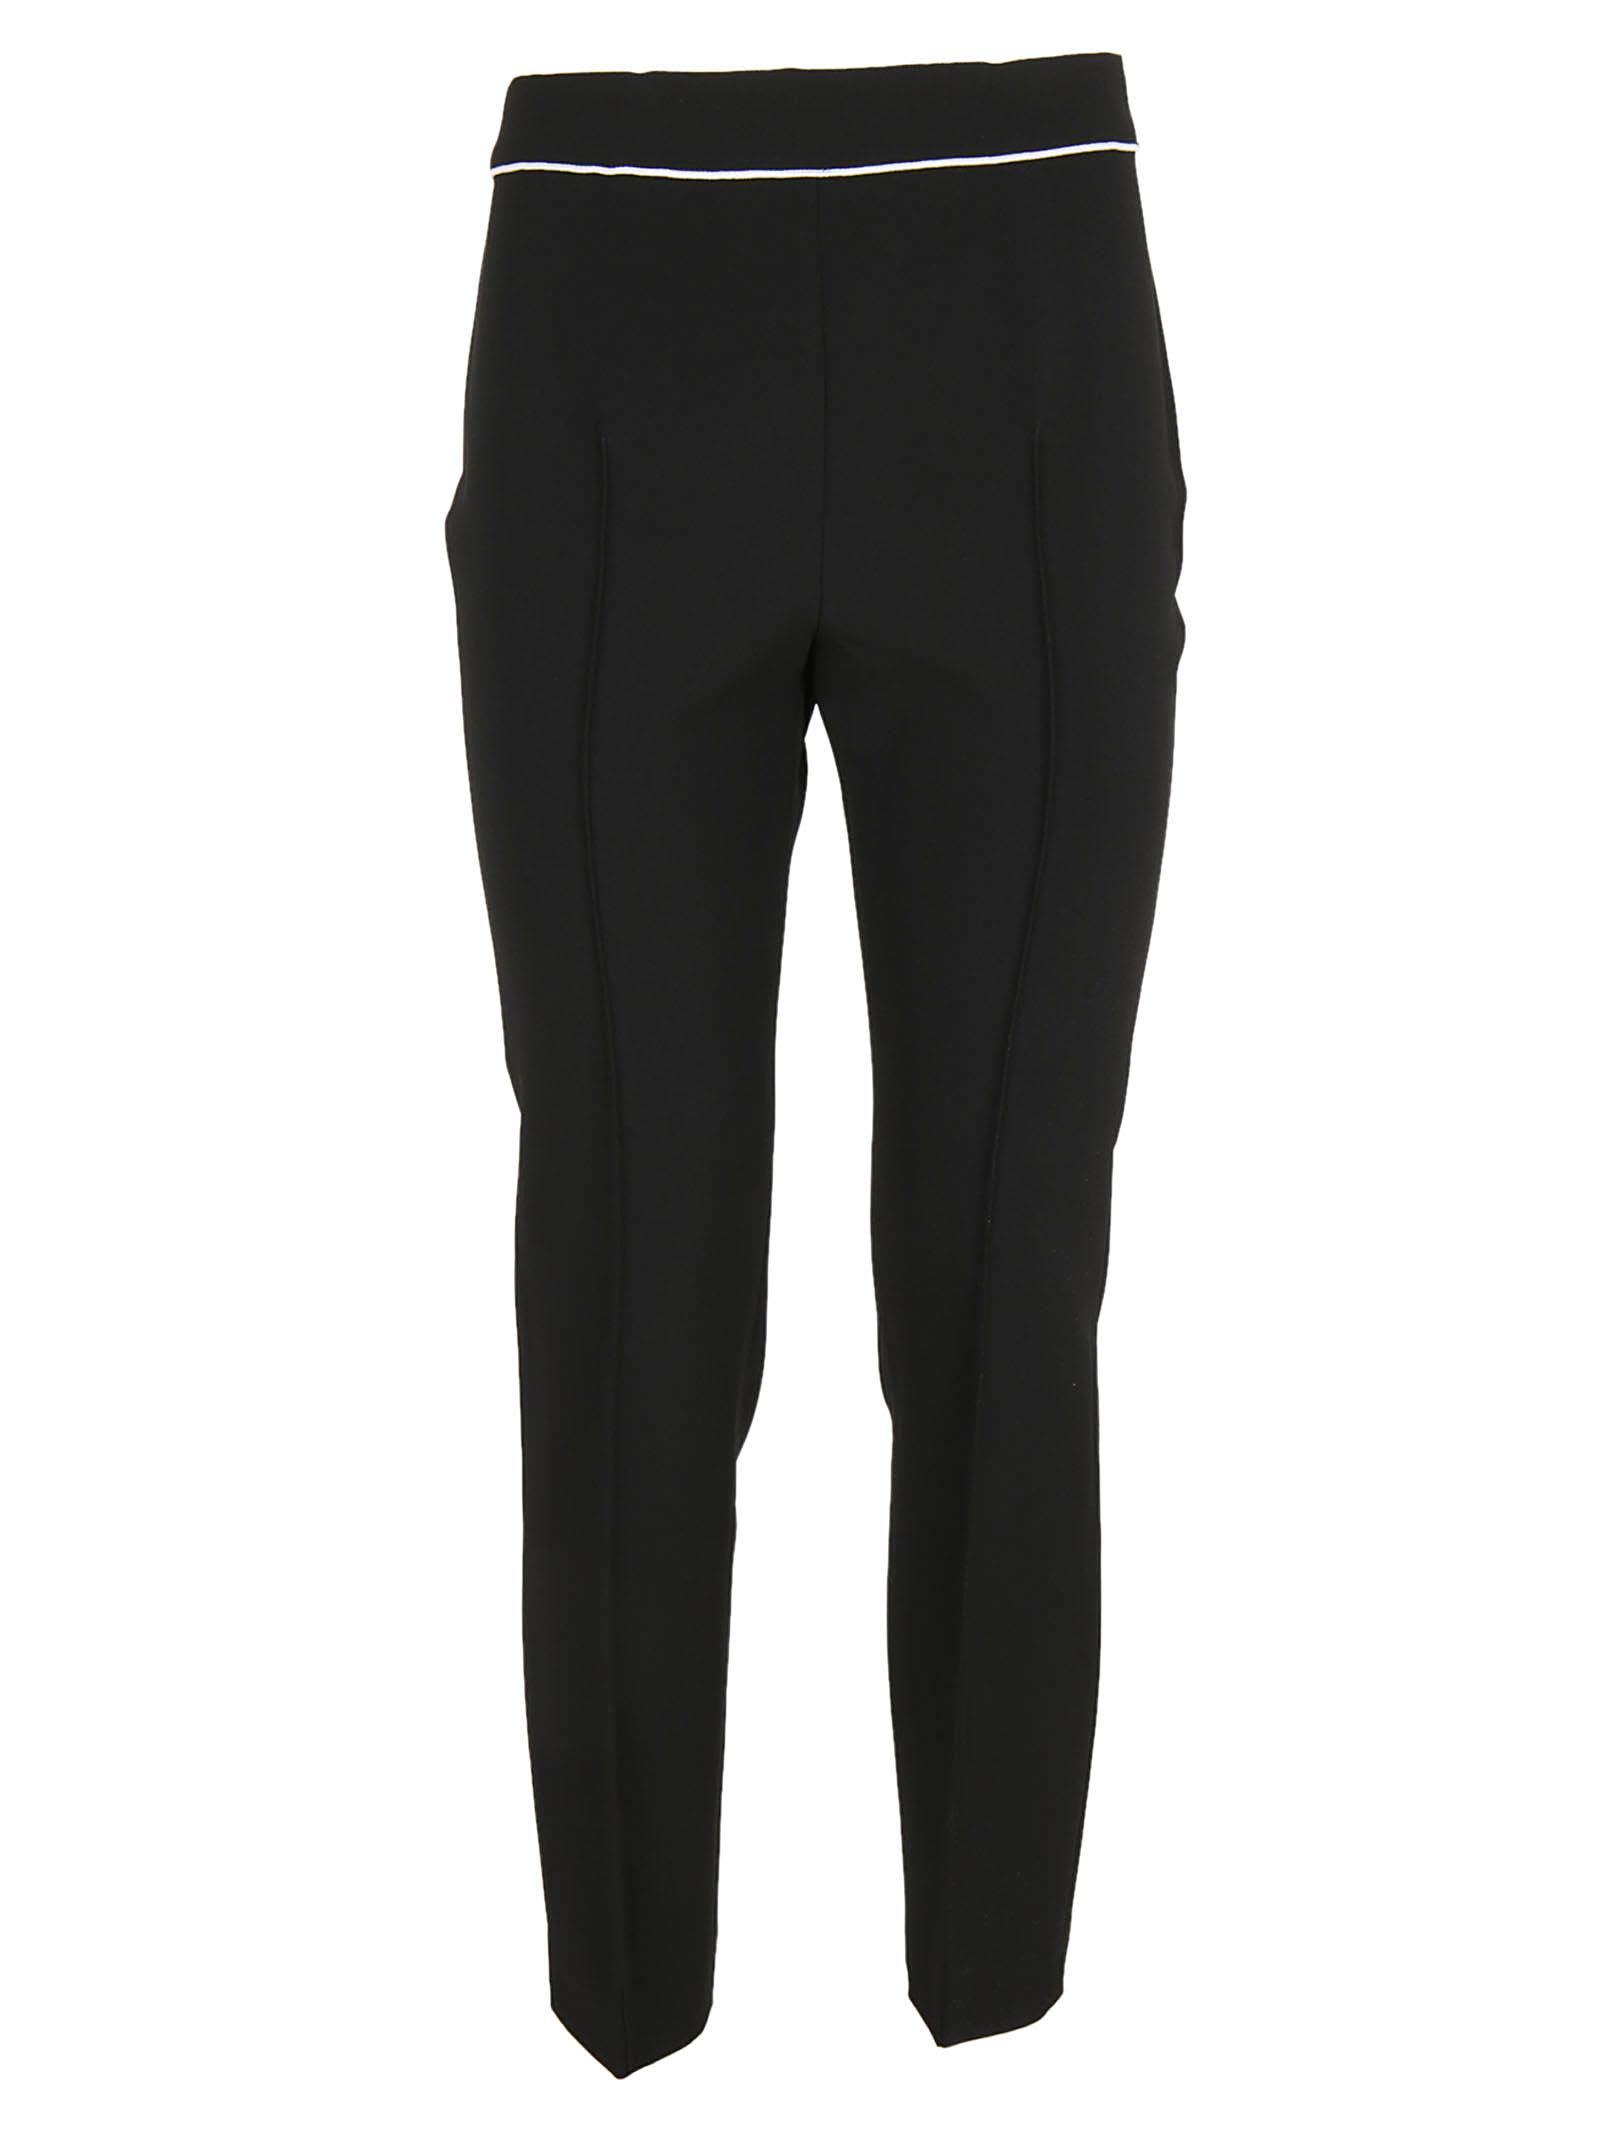 Boutique Moschino Piped Trim Trousers